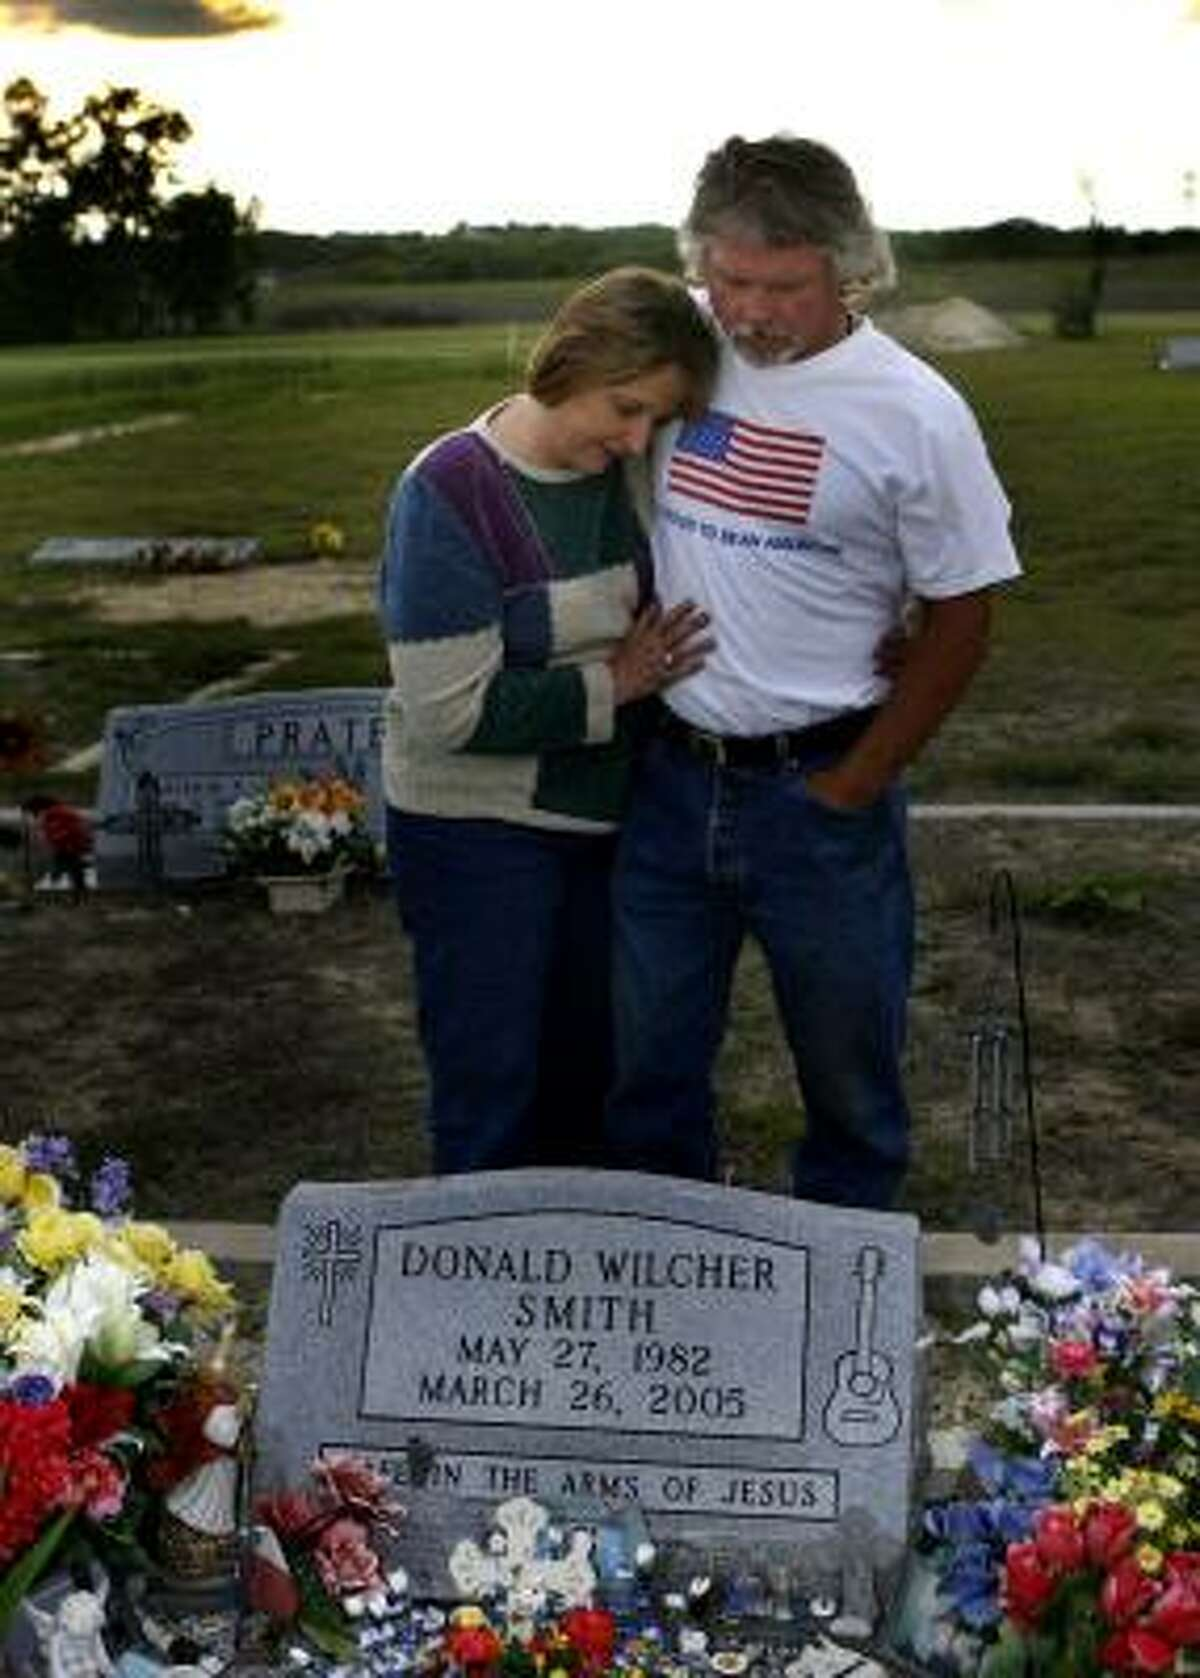 Tricia and Coit Smith visit their son's grave outside Temple every day. Their son, Donald W. Smith, died in a work accident at a chicken plant in Bryan in March 2005.